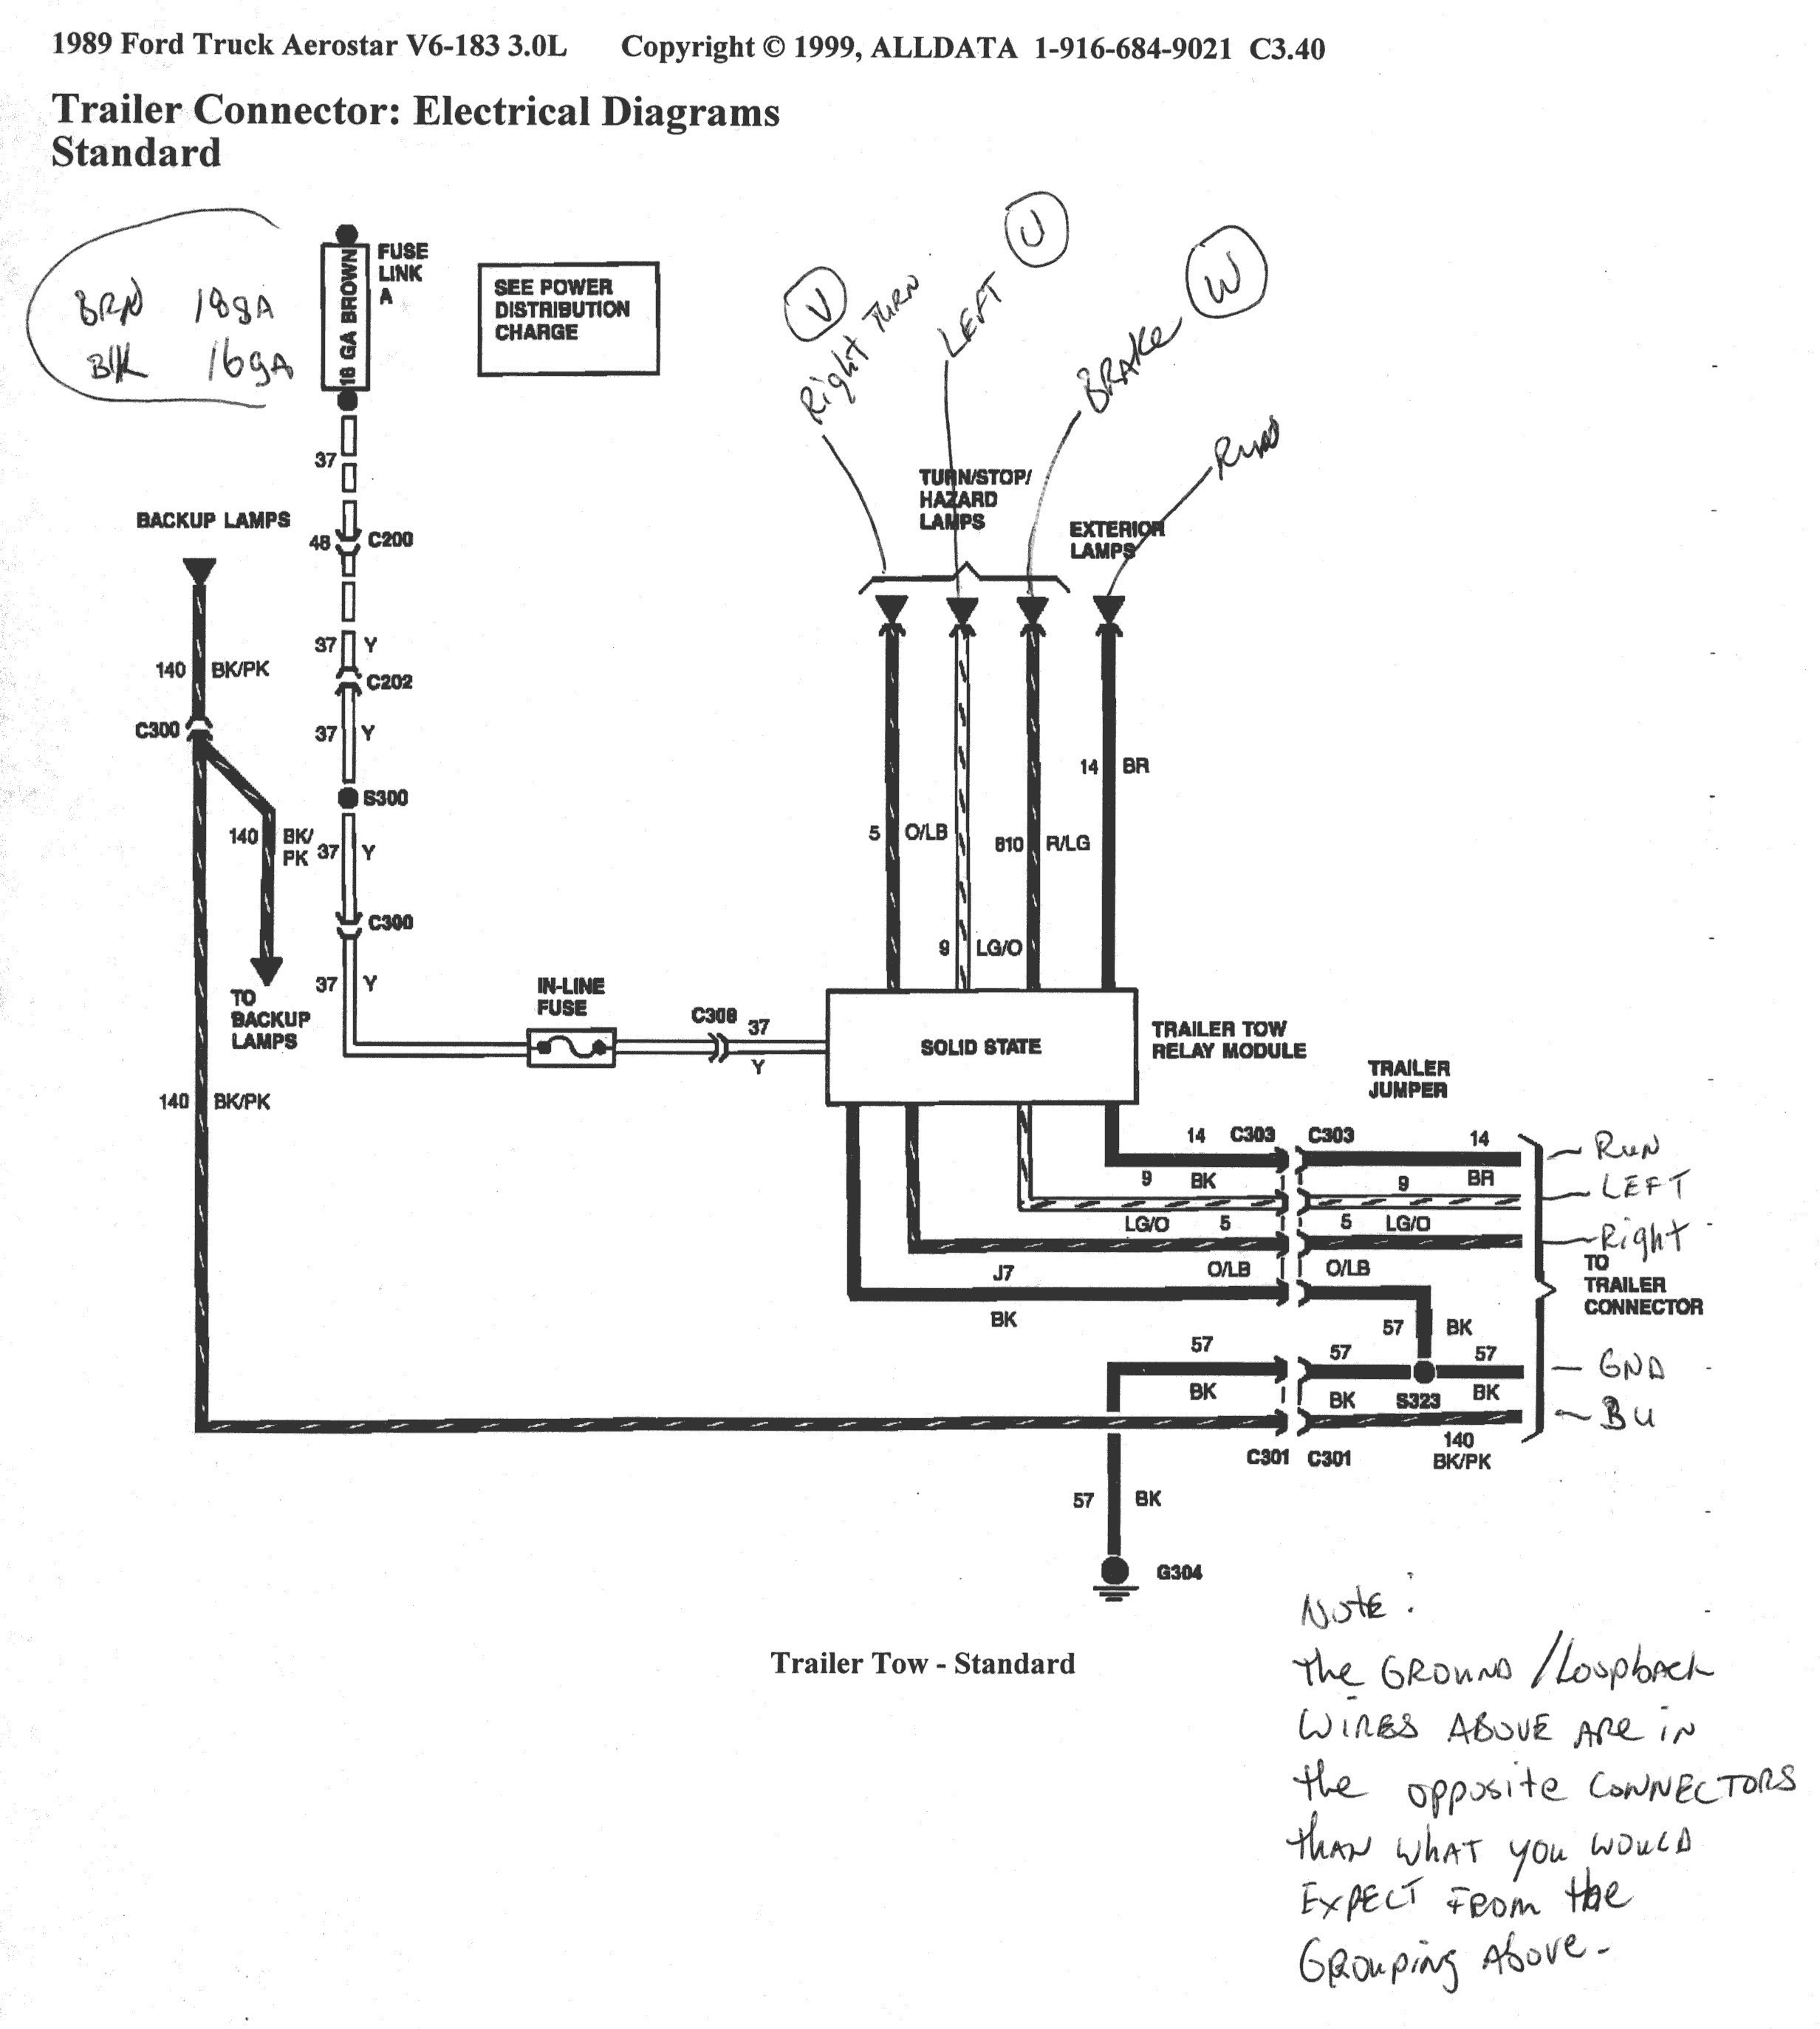 4 Pin Trailer Wiring Diagram F350 Wiring Diagram Right United A Right United A Maceratadoc It